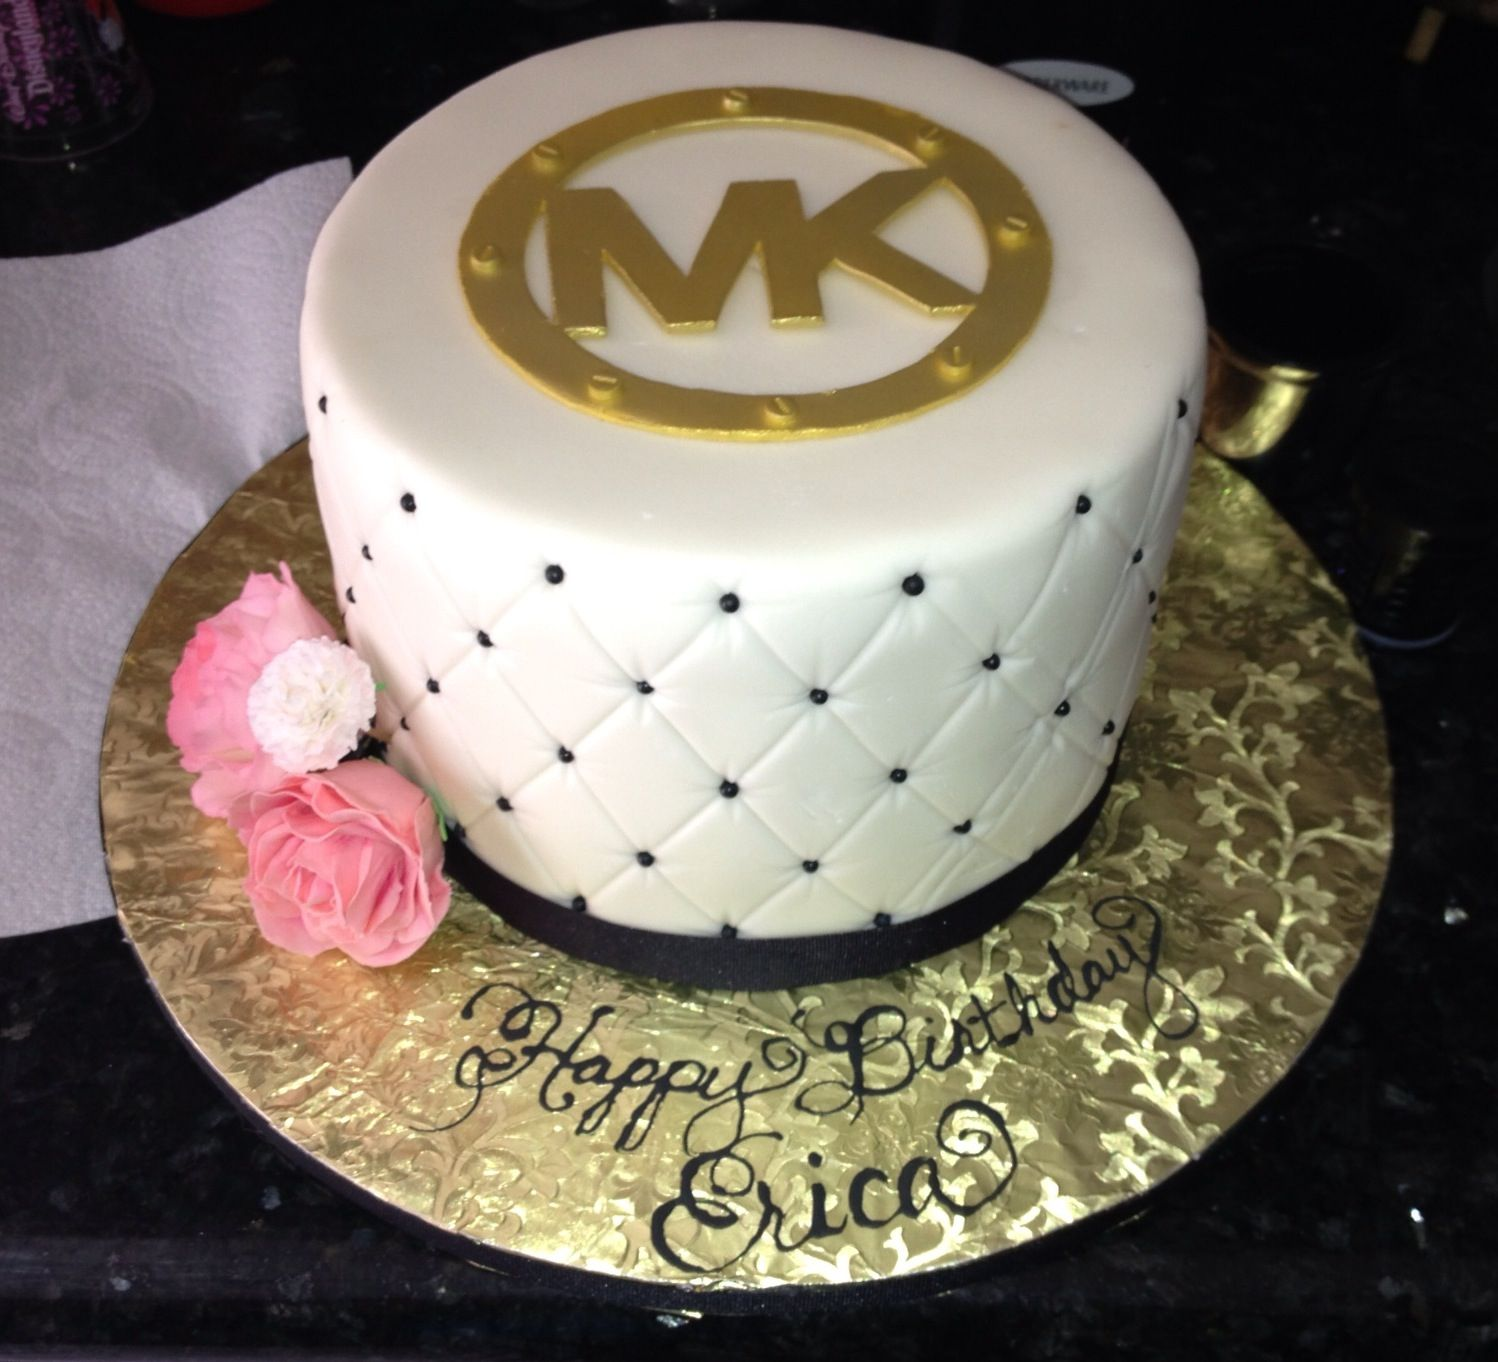 Mk bags on Michael kors cake Quilted cake and Cake